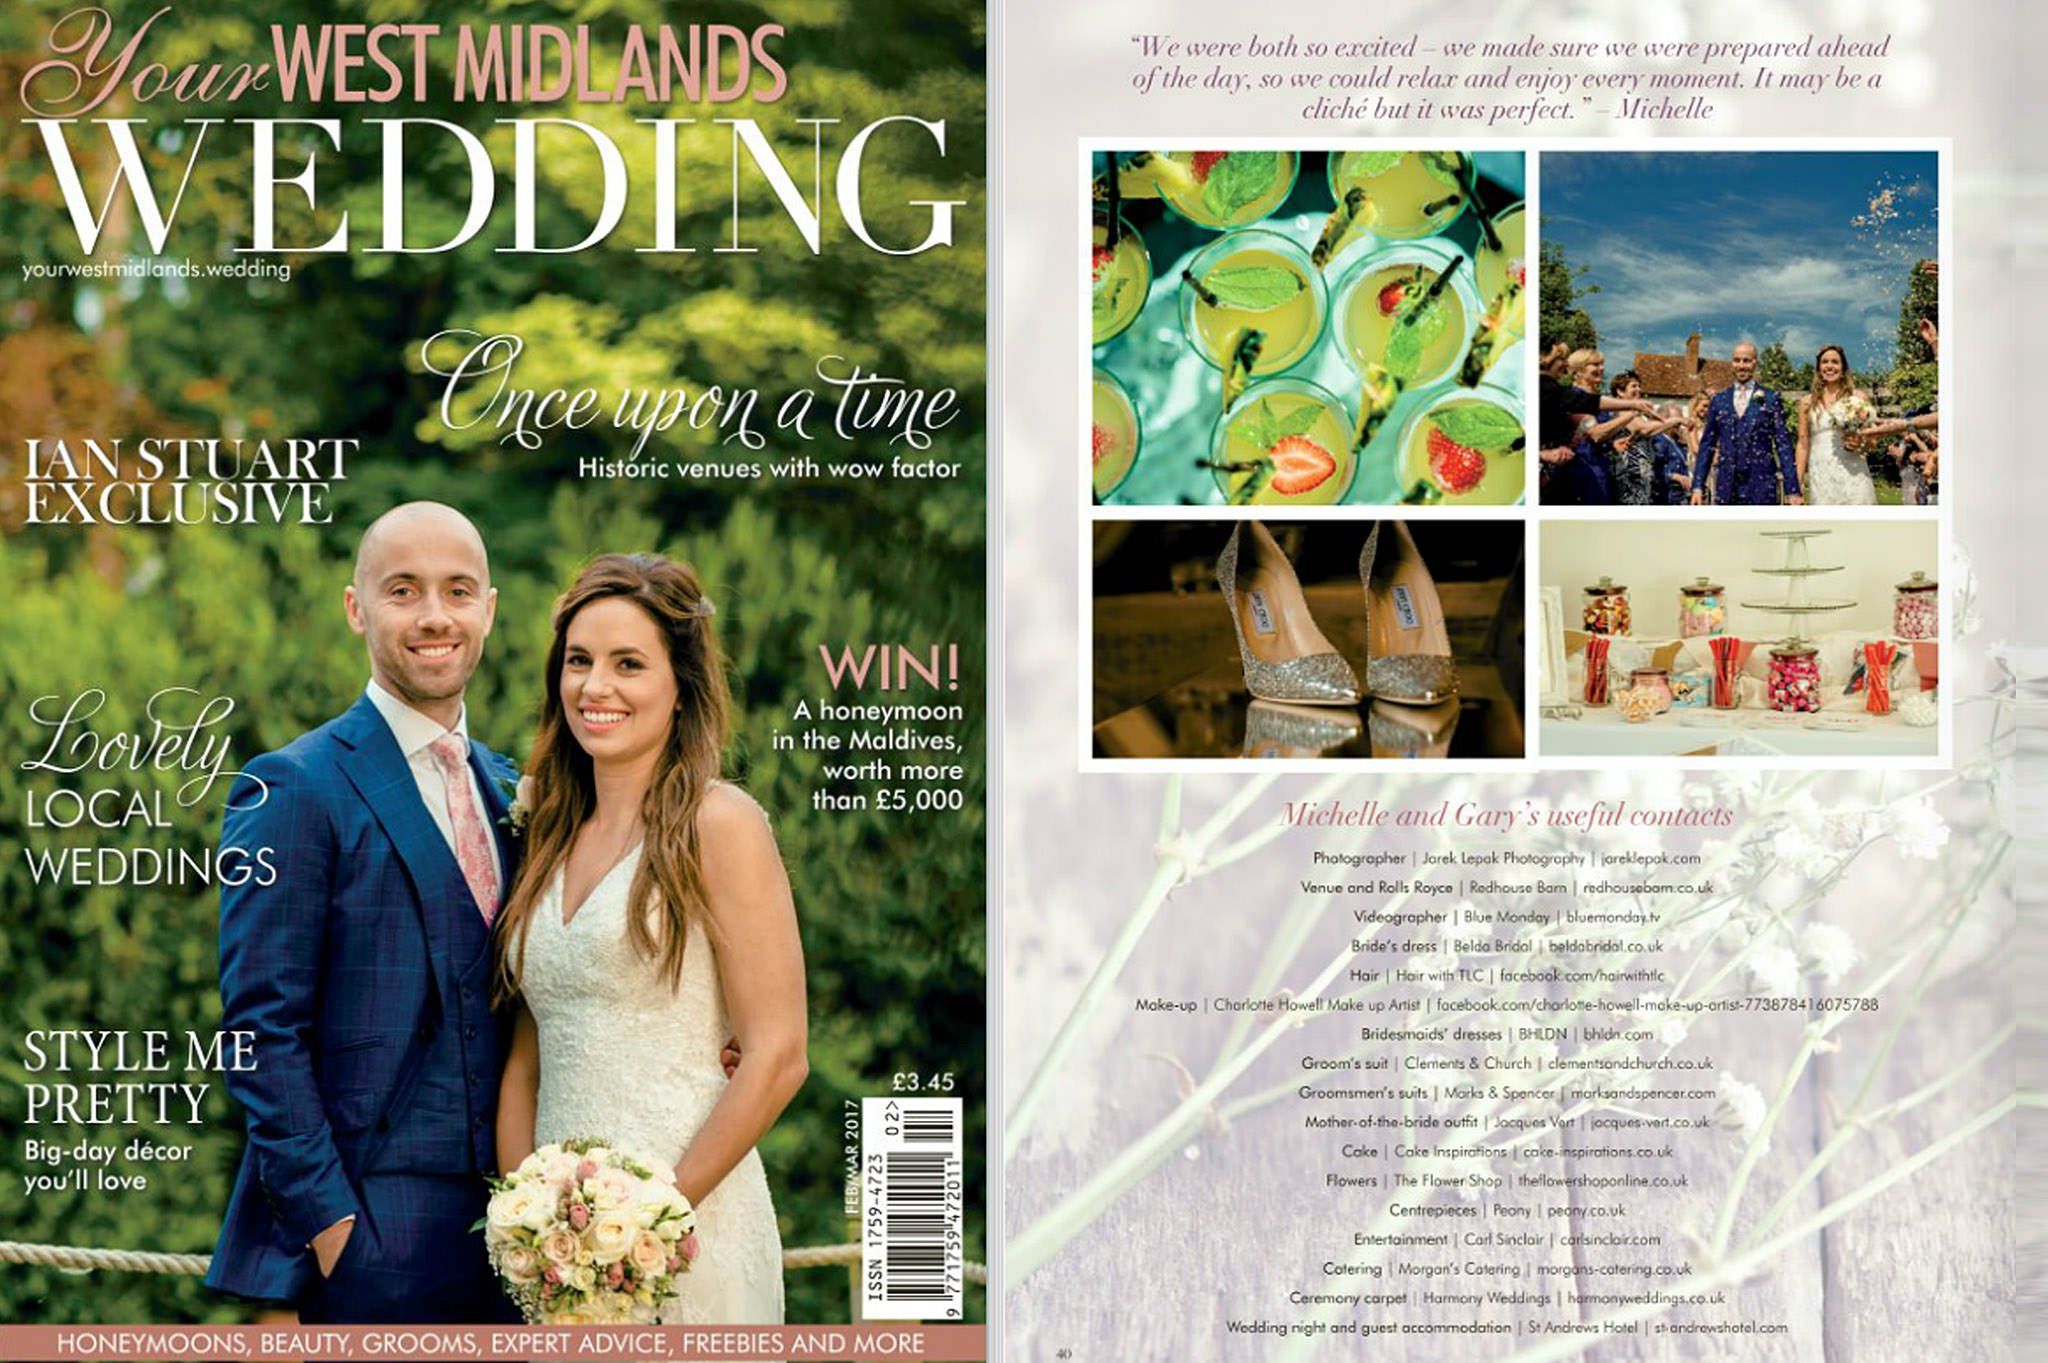 Gary & Michelle's special day featured in Your West Midlands wedding magazine 1